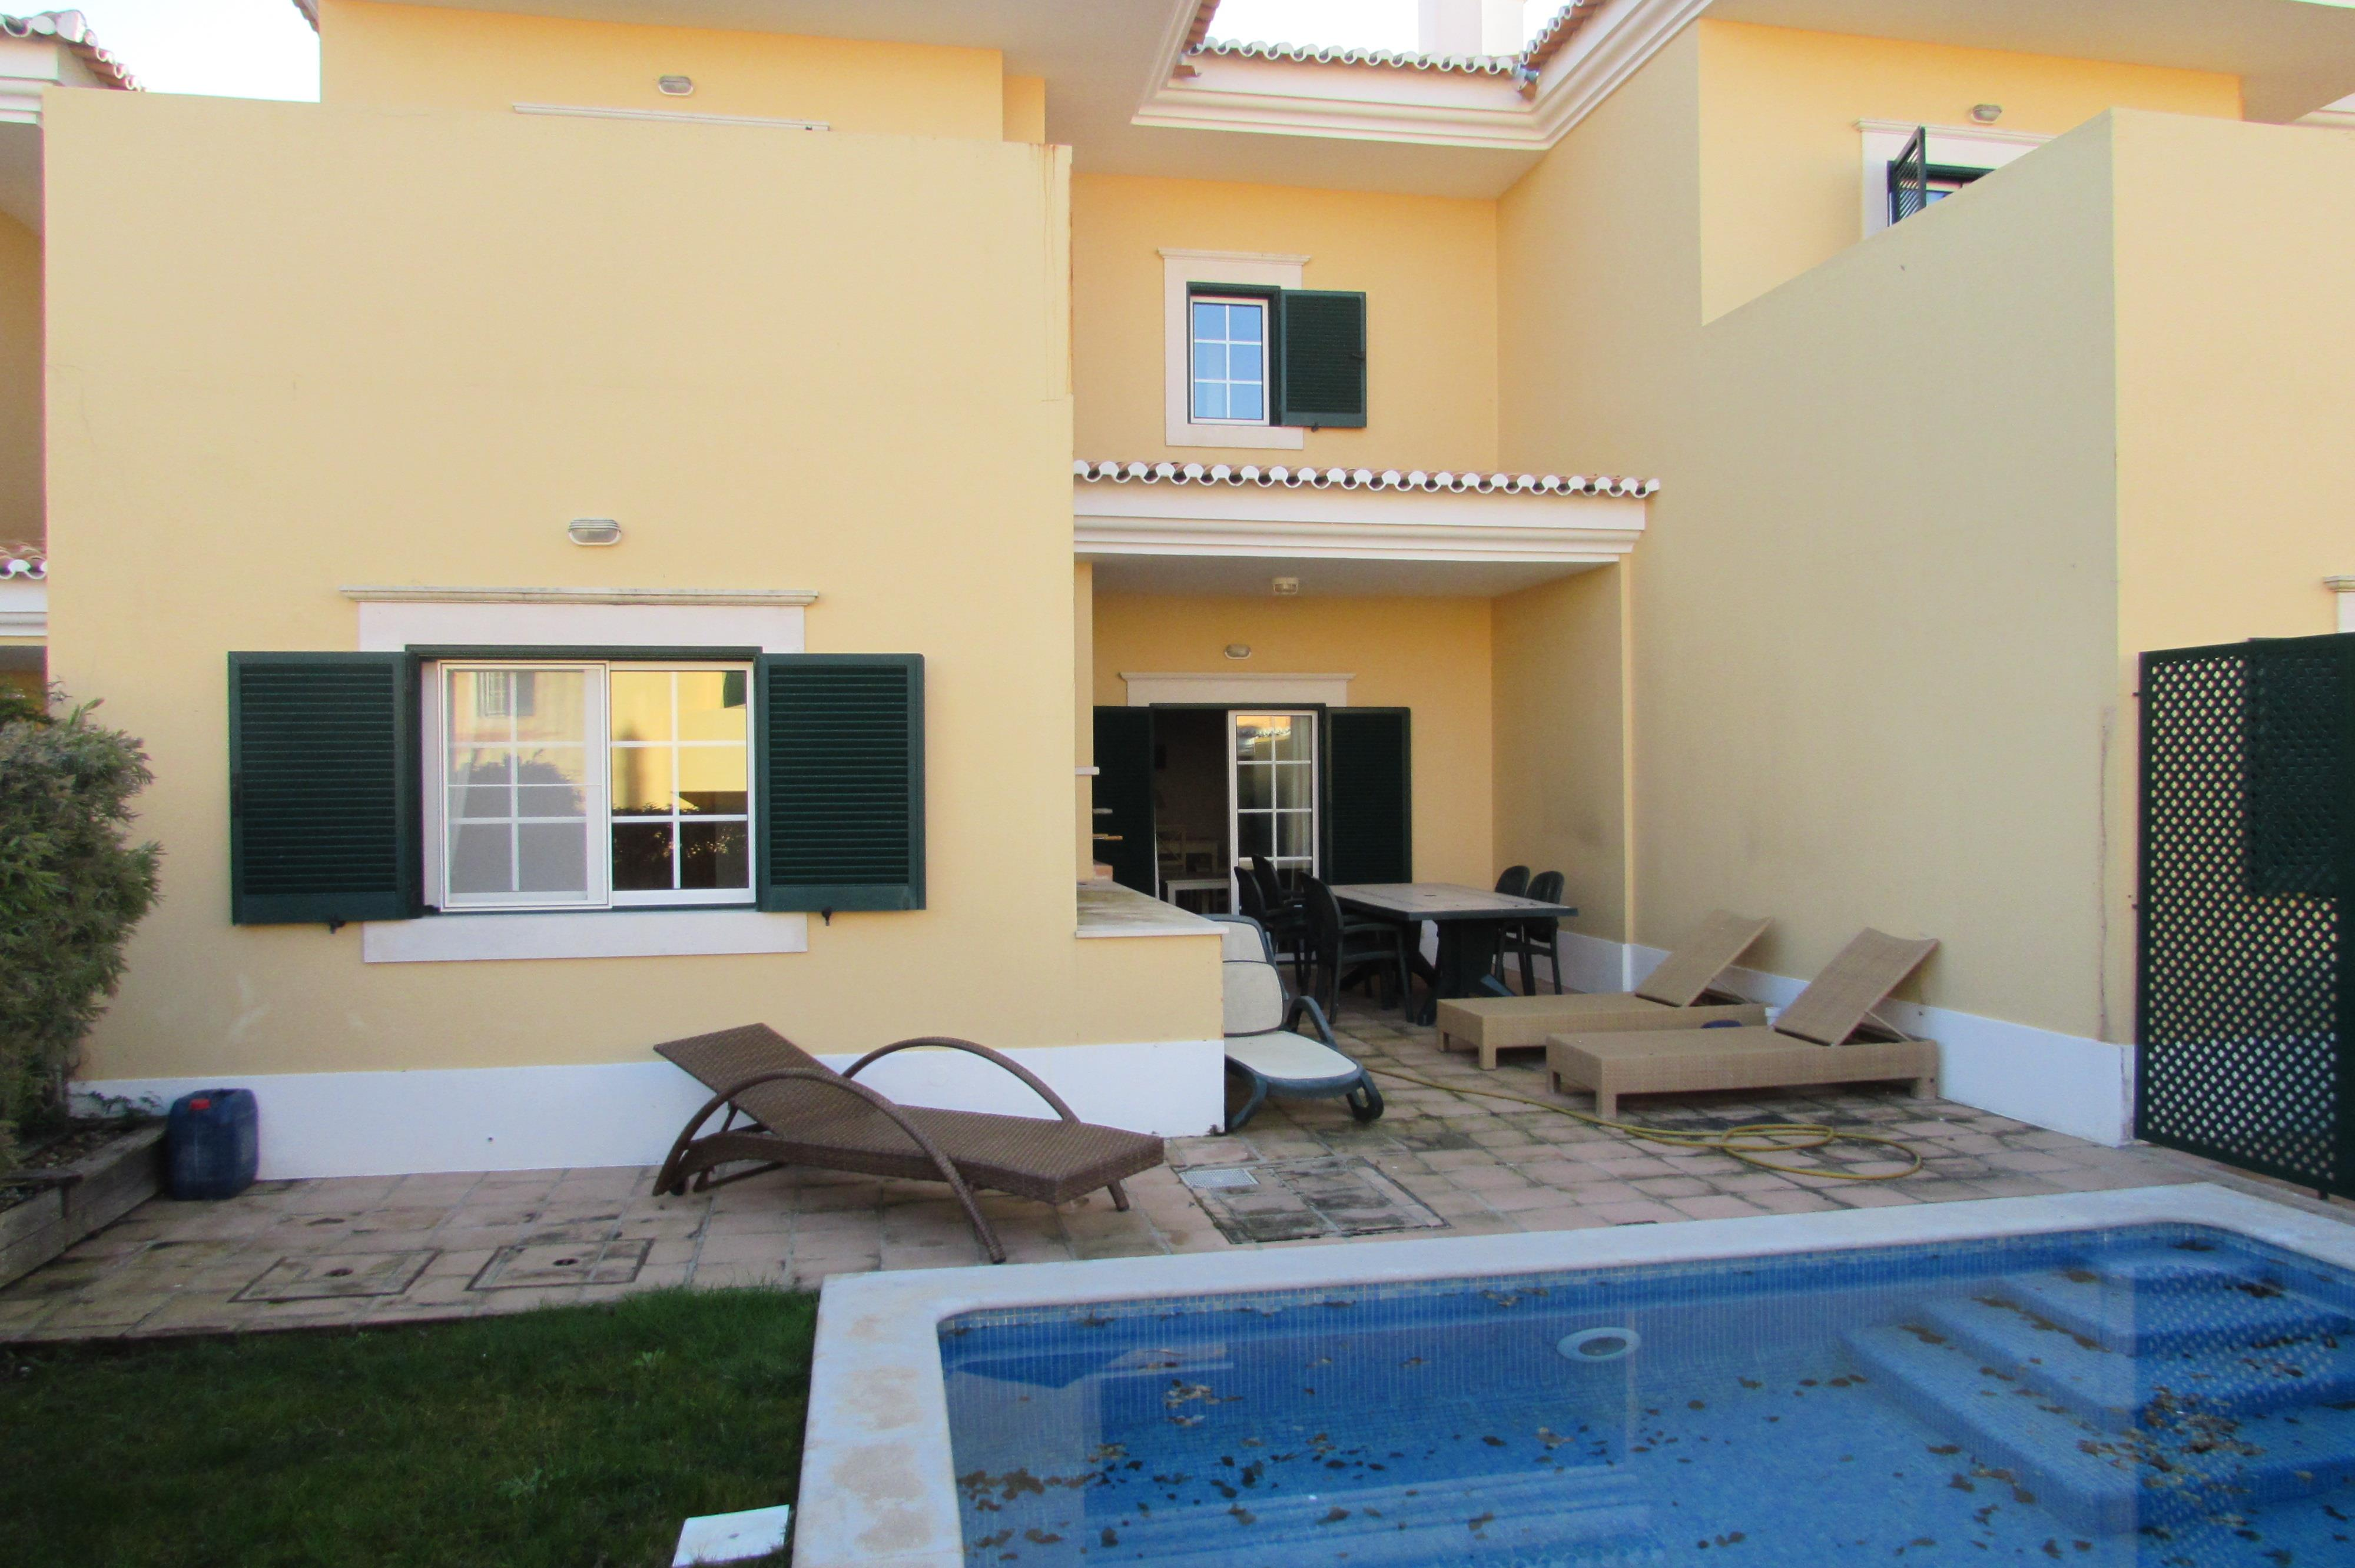 Single Family Home for Sale at Detached house, 3 bedrooms, for Sale Loule, Algarve, 8135-106 Portugal